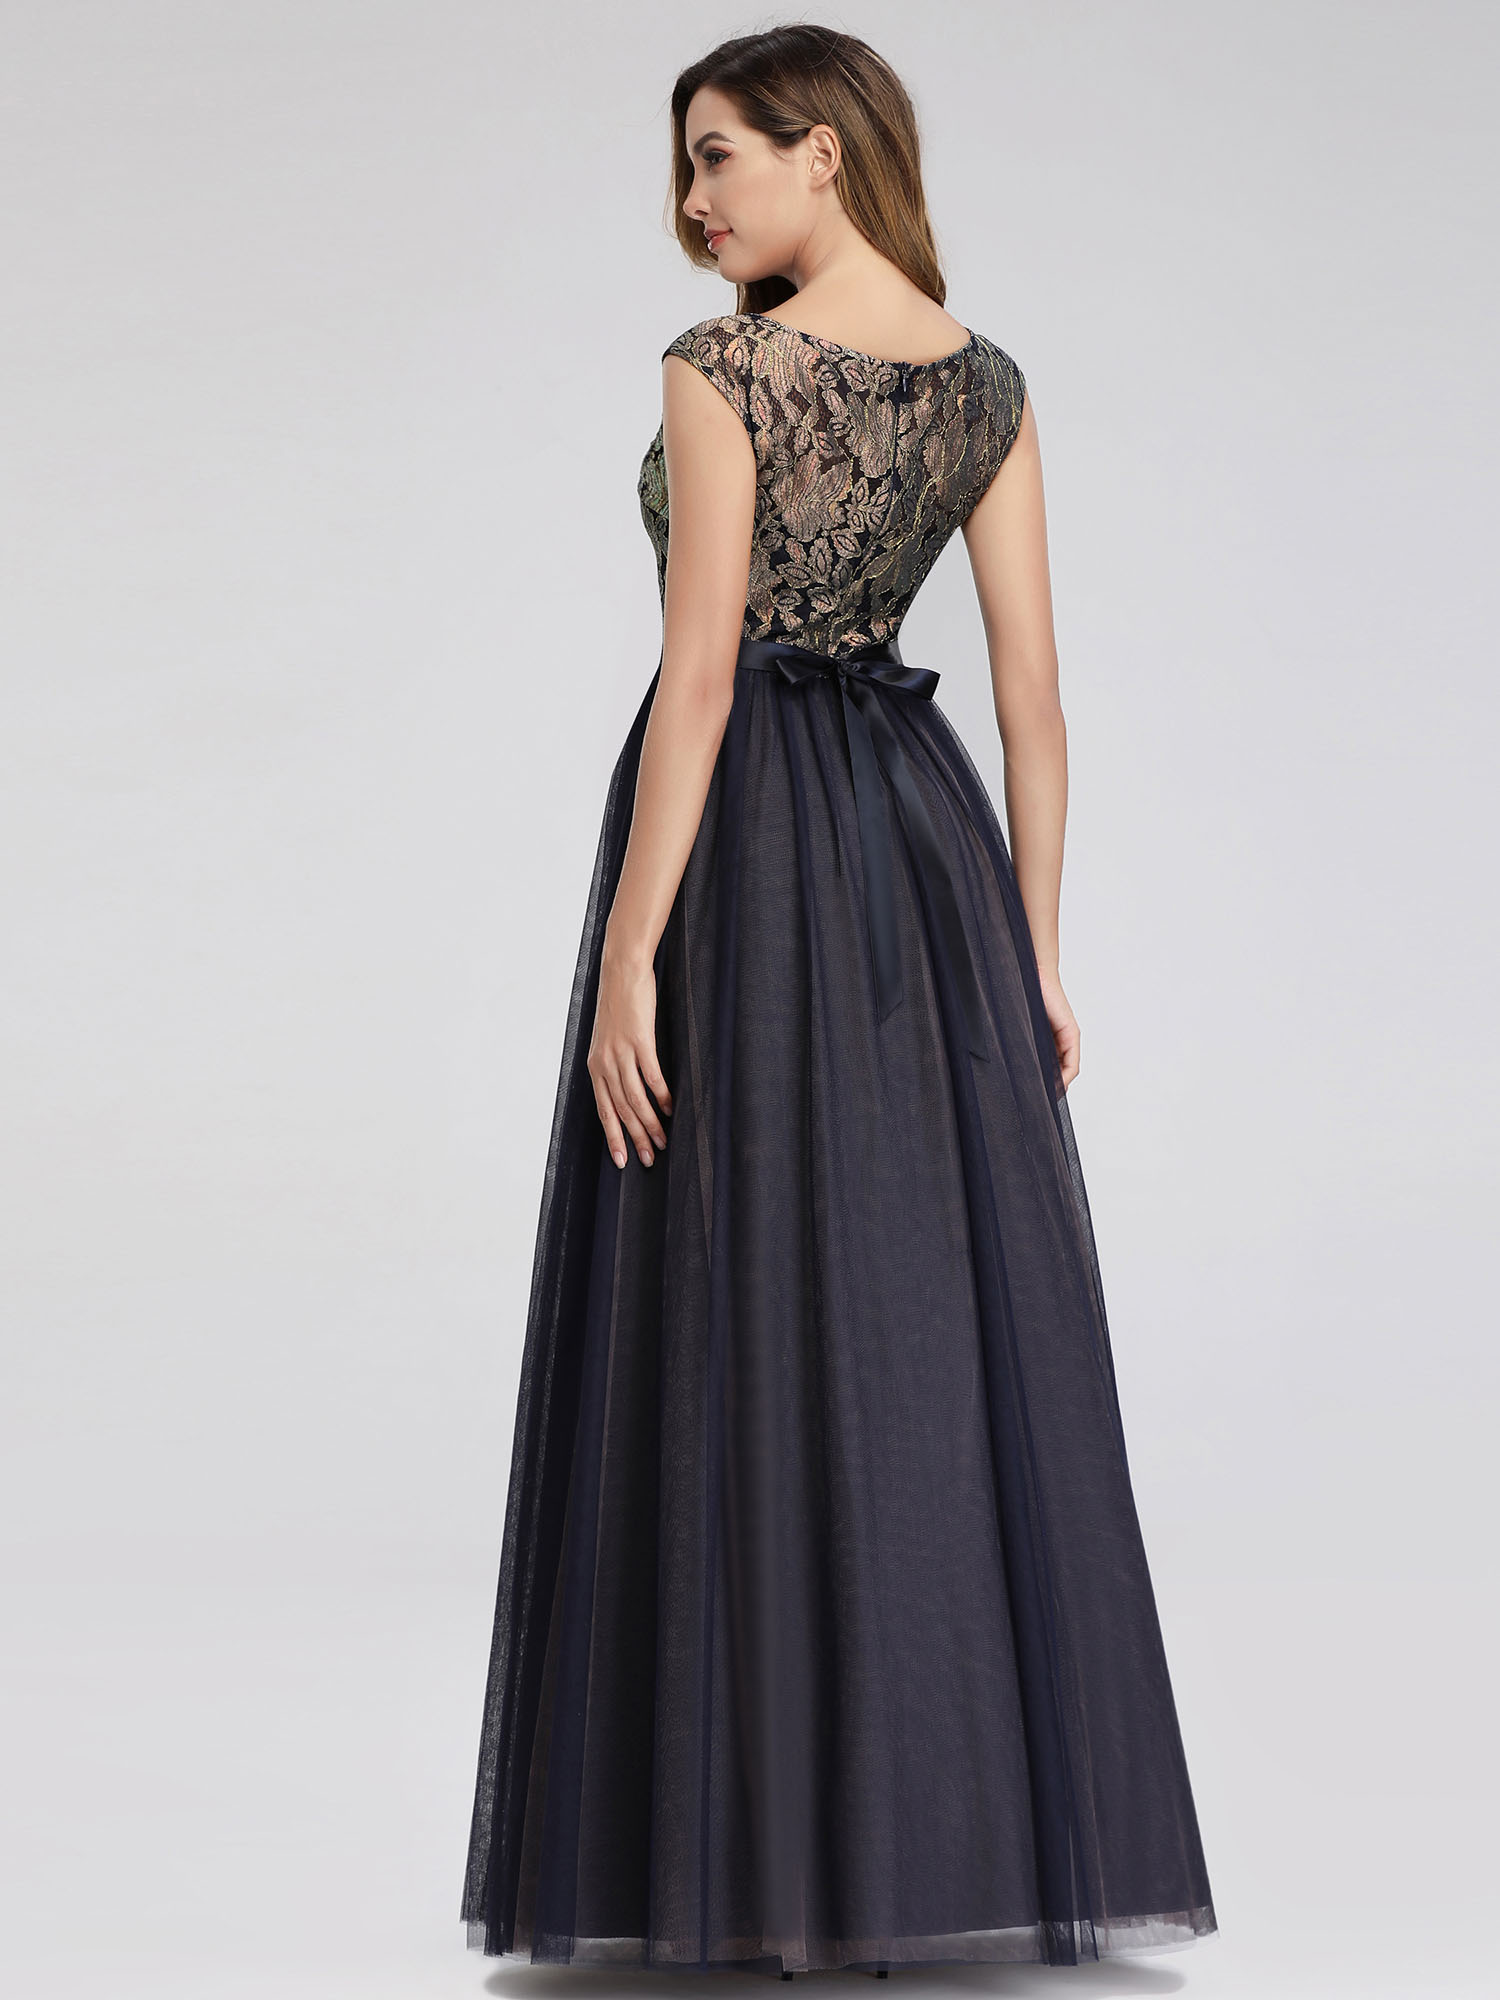 Ever-pretty-Formal-A-line-Evening-Gowns-Cocktail-Long-Lace-Homecoming-Prom-Dress thumbnail 5